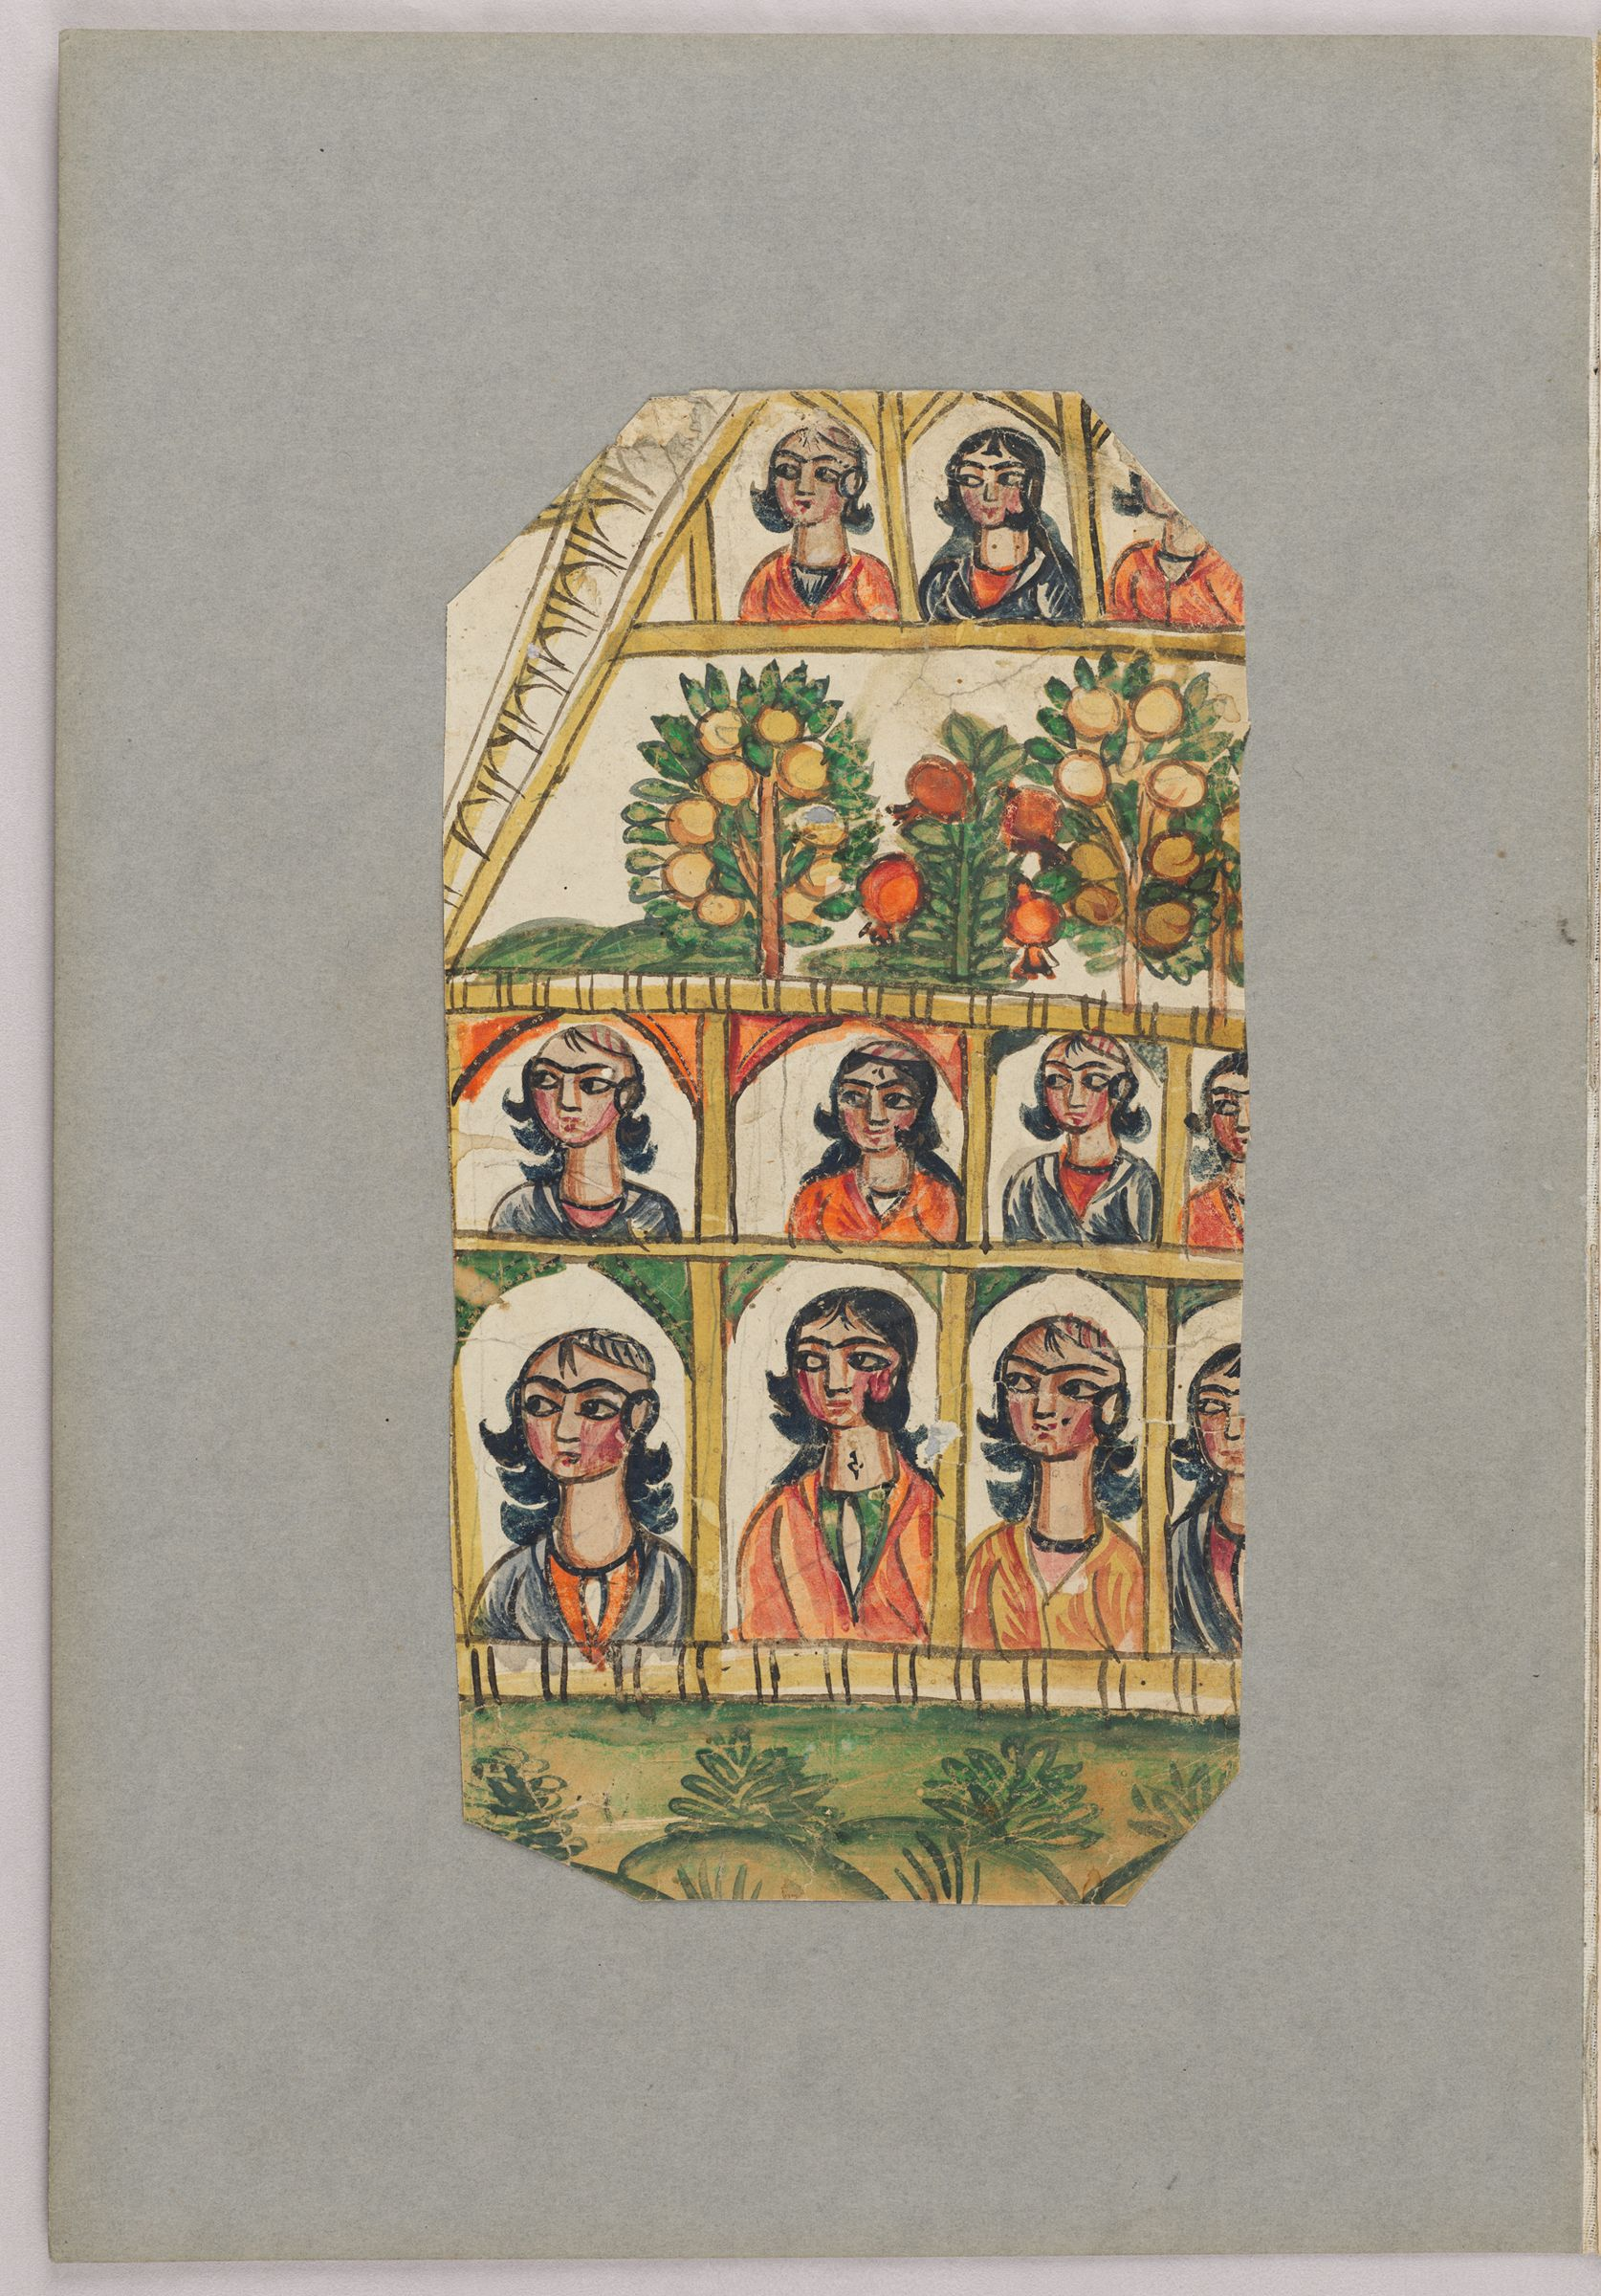 Folio 53 From An Album Of Drawings And Paintings: Figures In Porticoes Surrounding Fruit Trees (Recto); Five Drawings Of Flowers Framed By A Colored Paper Border (Verso)